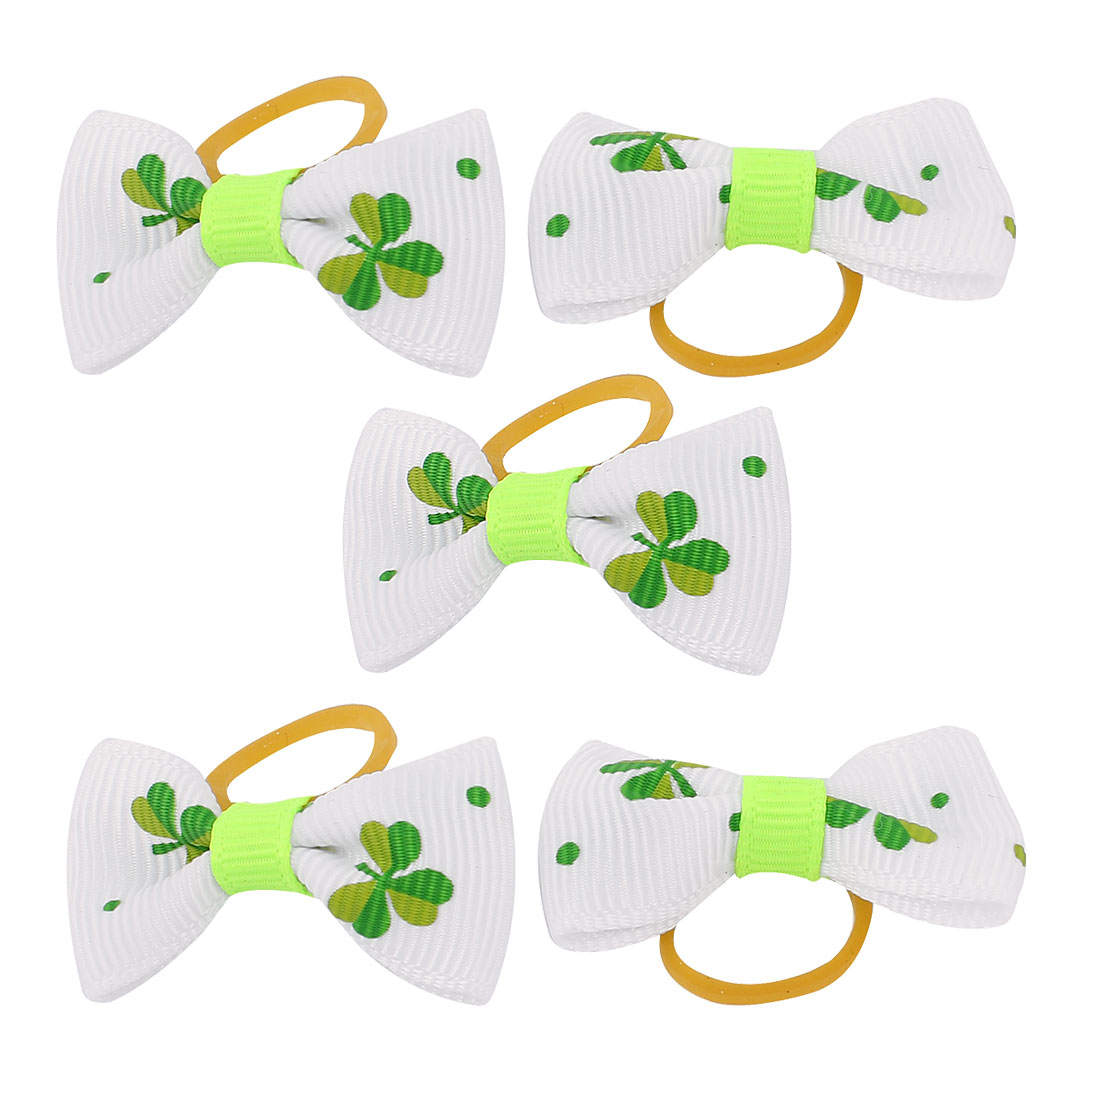 Pet Dog Clover Pattern Hair Grooming Rubber Bands Clips Hairpins 5 Pcs White